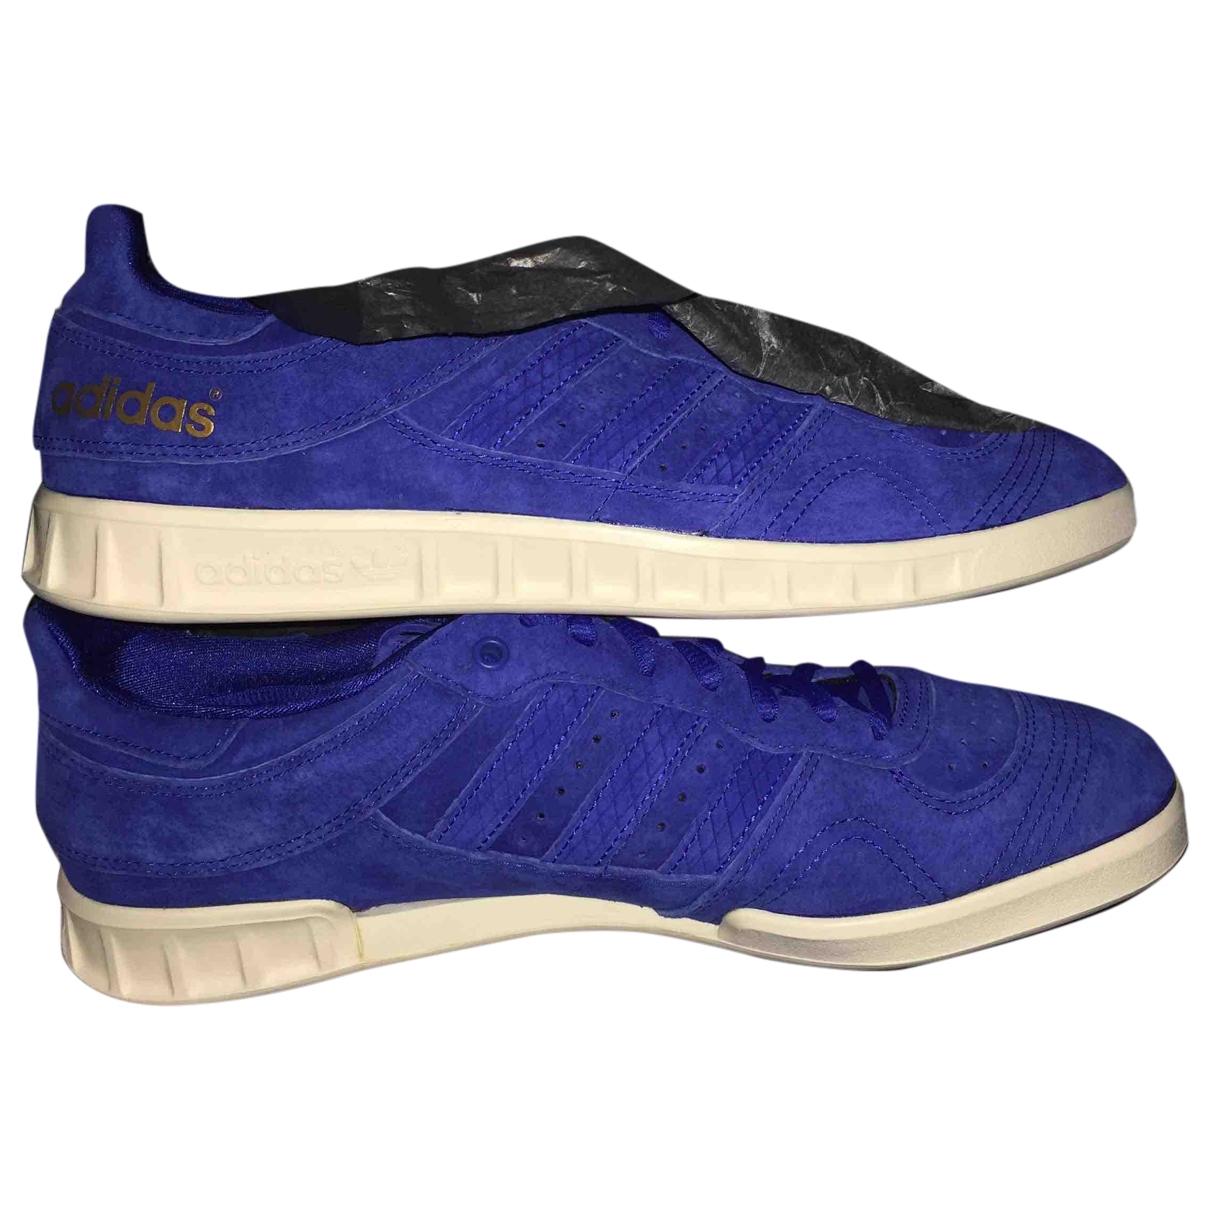 Adidas Superstar Sneakers in  Blau Veloursleder